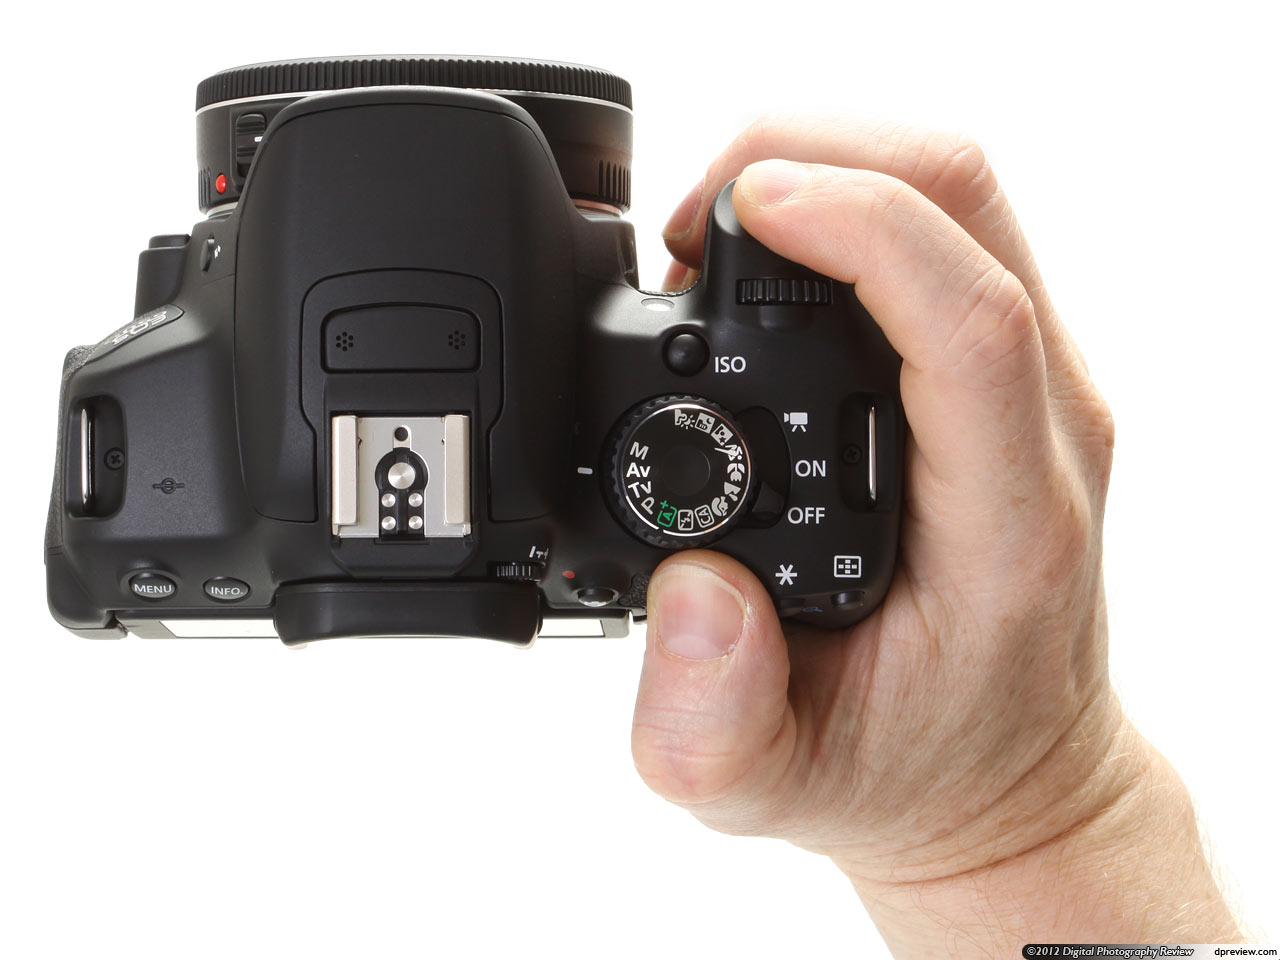 Canon EOS 650D/Rebel T4i In-Depth Review: Digital